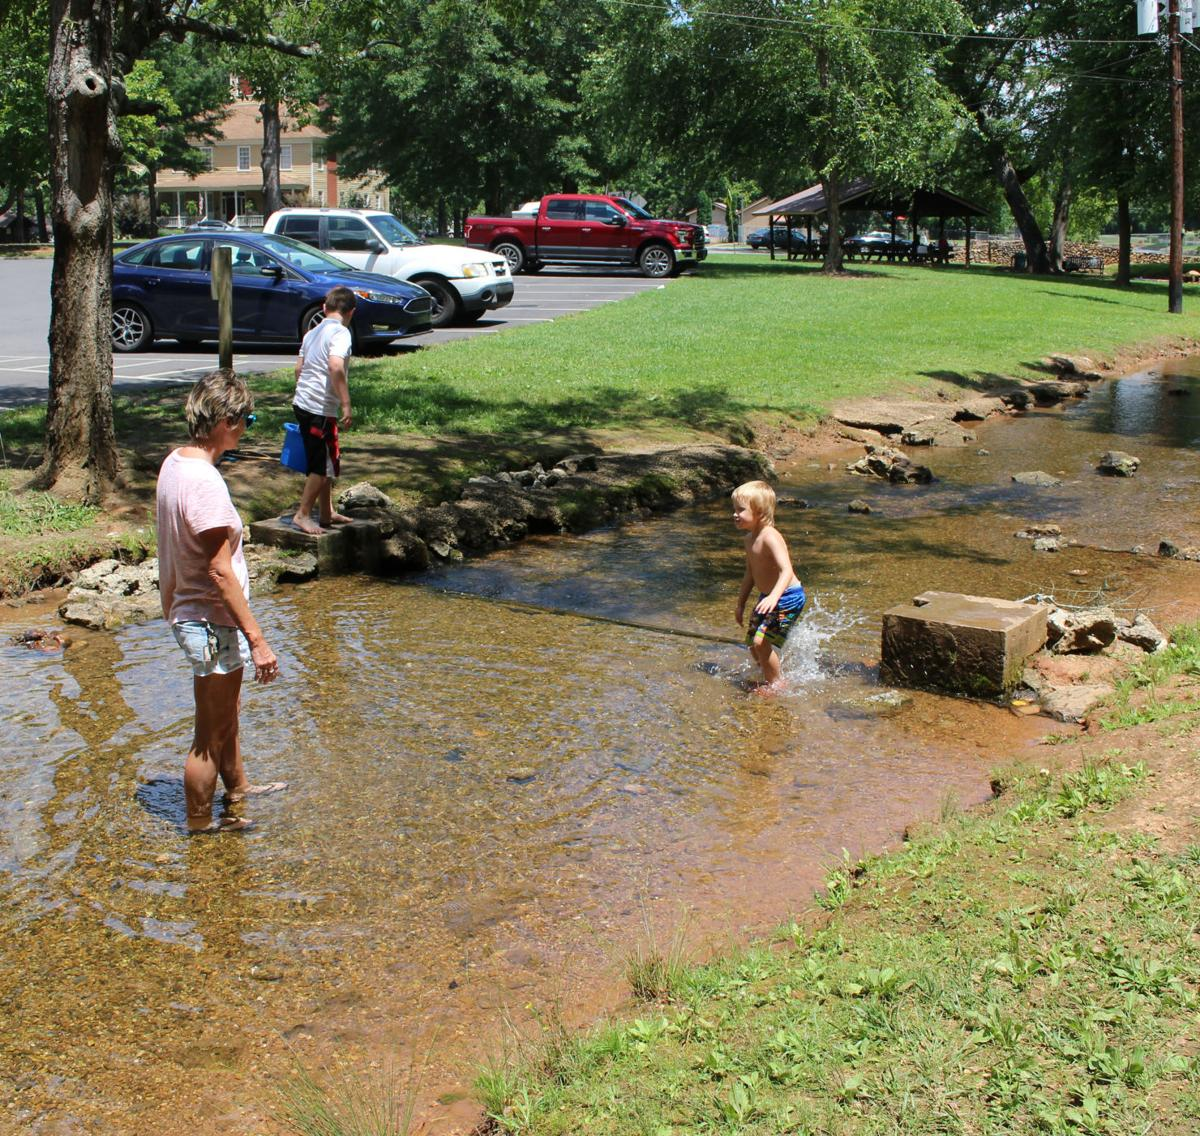 Swimming and splashing at Rolater Park